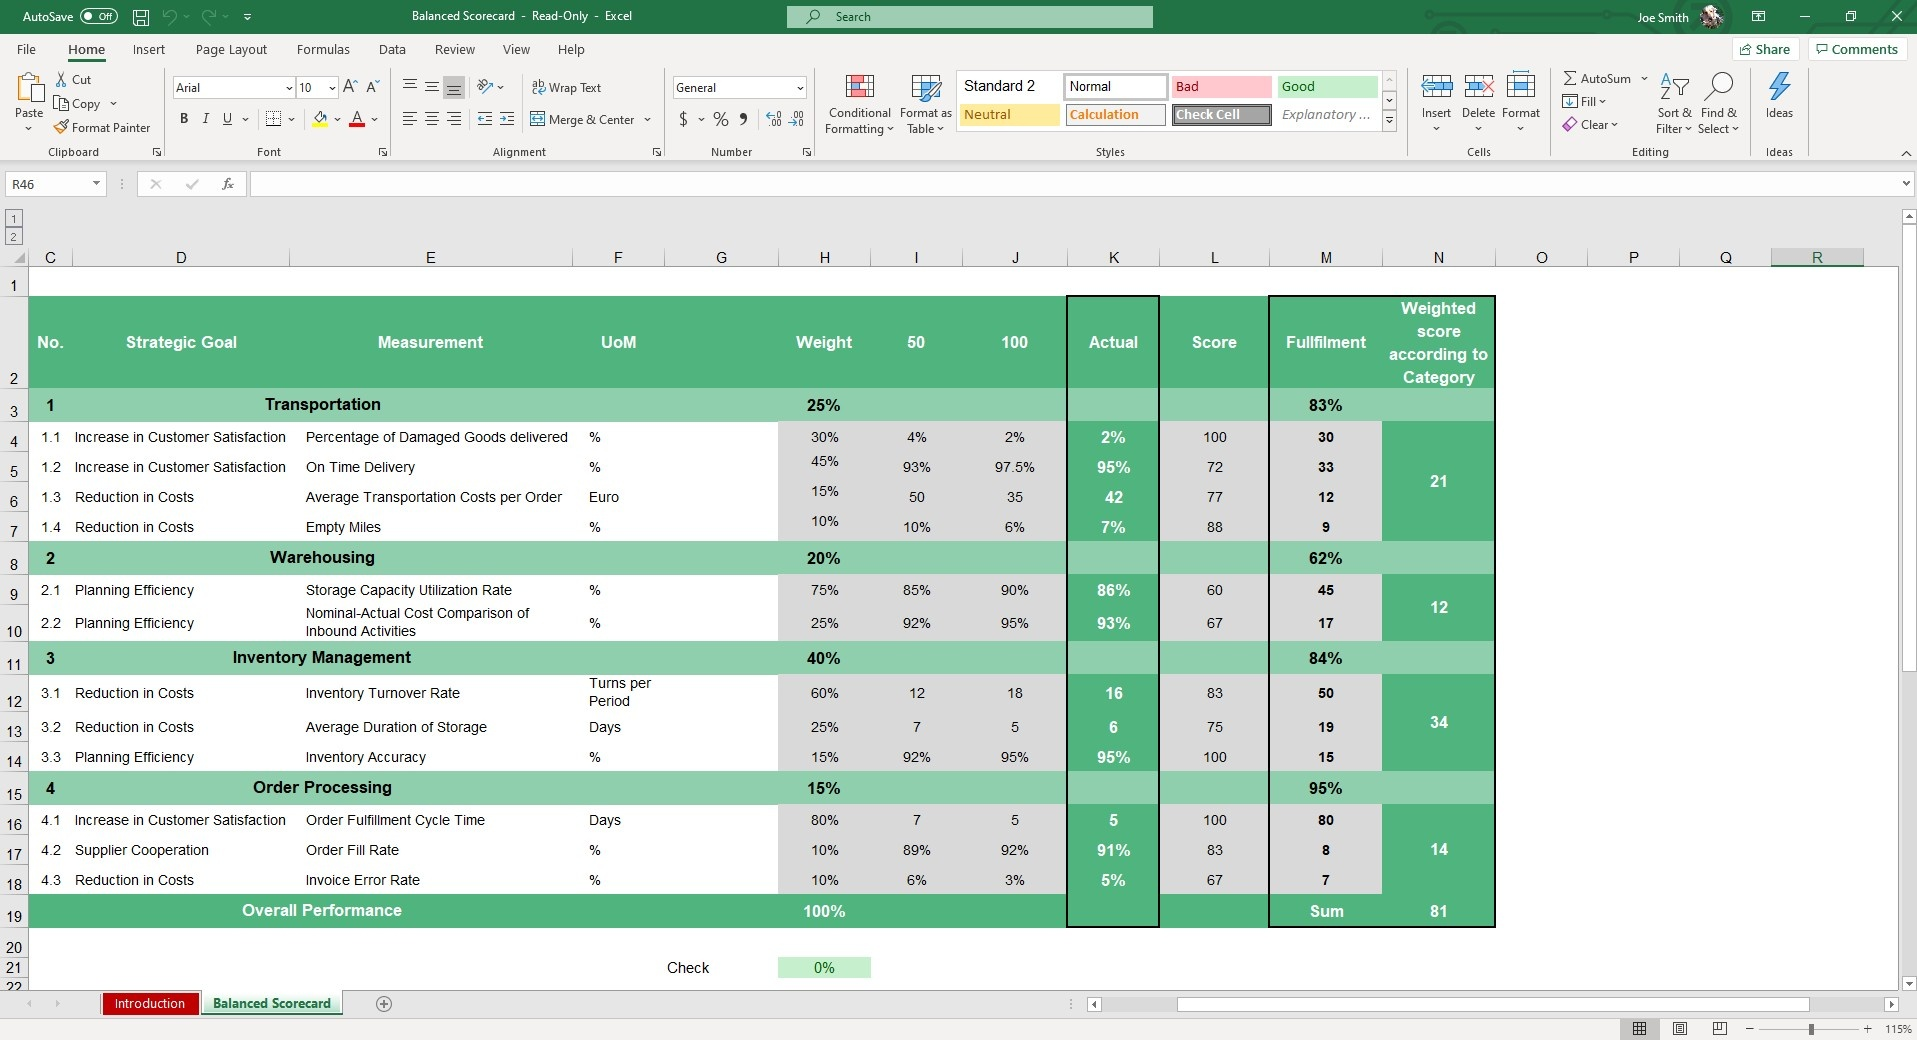 In the Balanced Scorecard sheet you can input your company goals, weight, fulfill and score to determine overall performance.